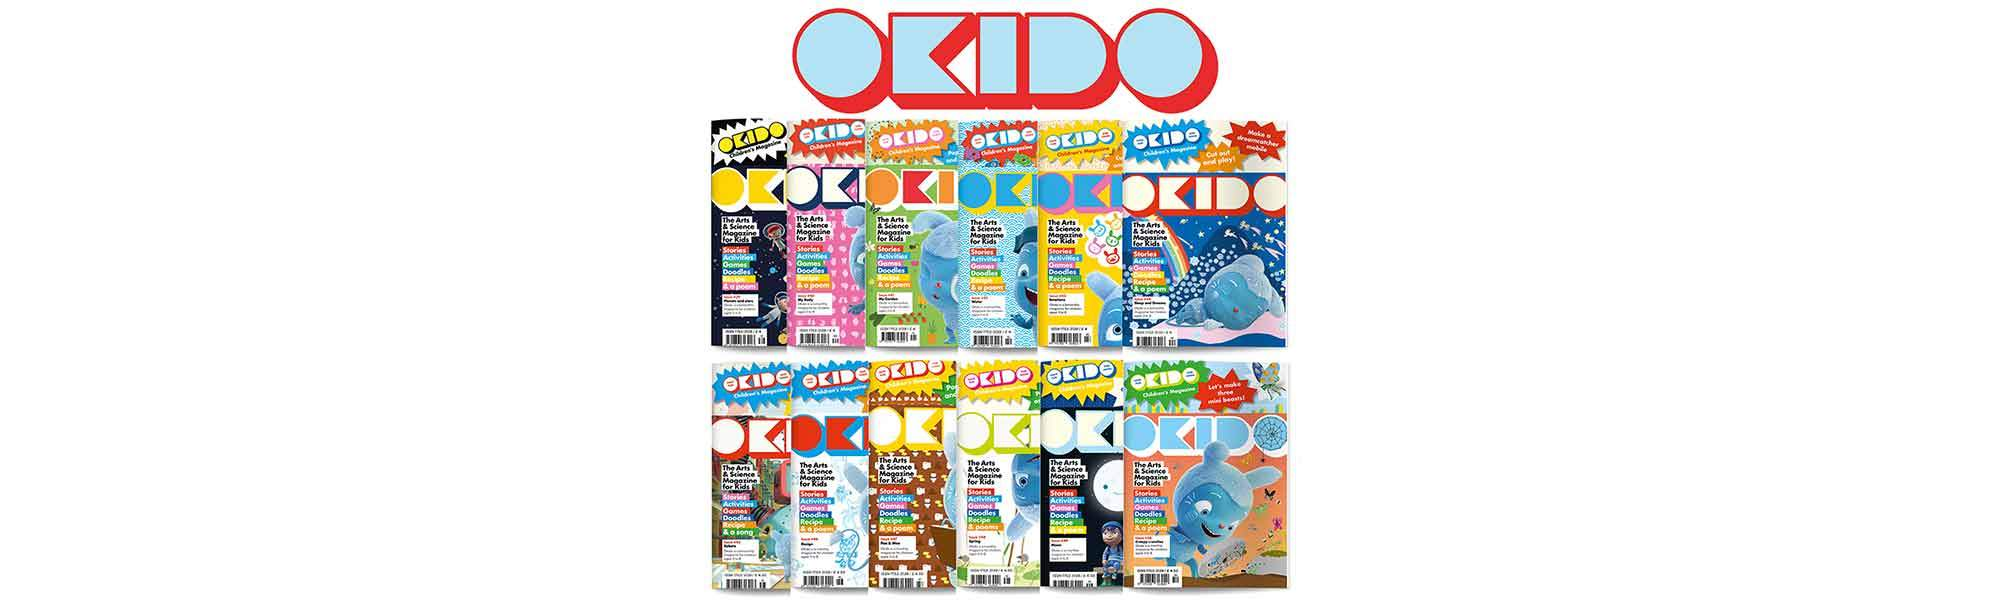 Little Bird Okido Magazine Subscription - Art, Science and More for Curious Minds Aged 3-8, Exclusive Up to 33% off